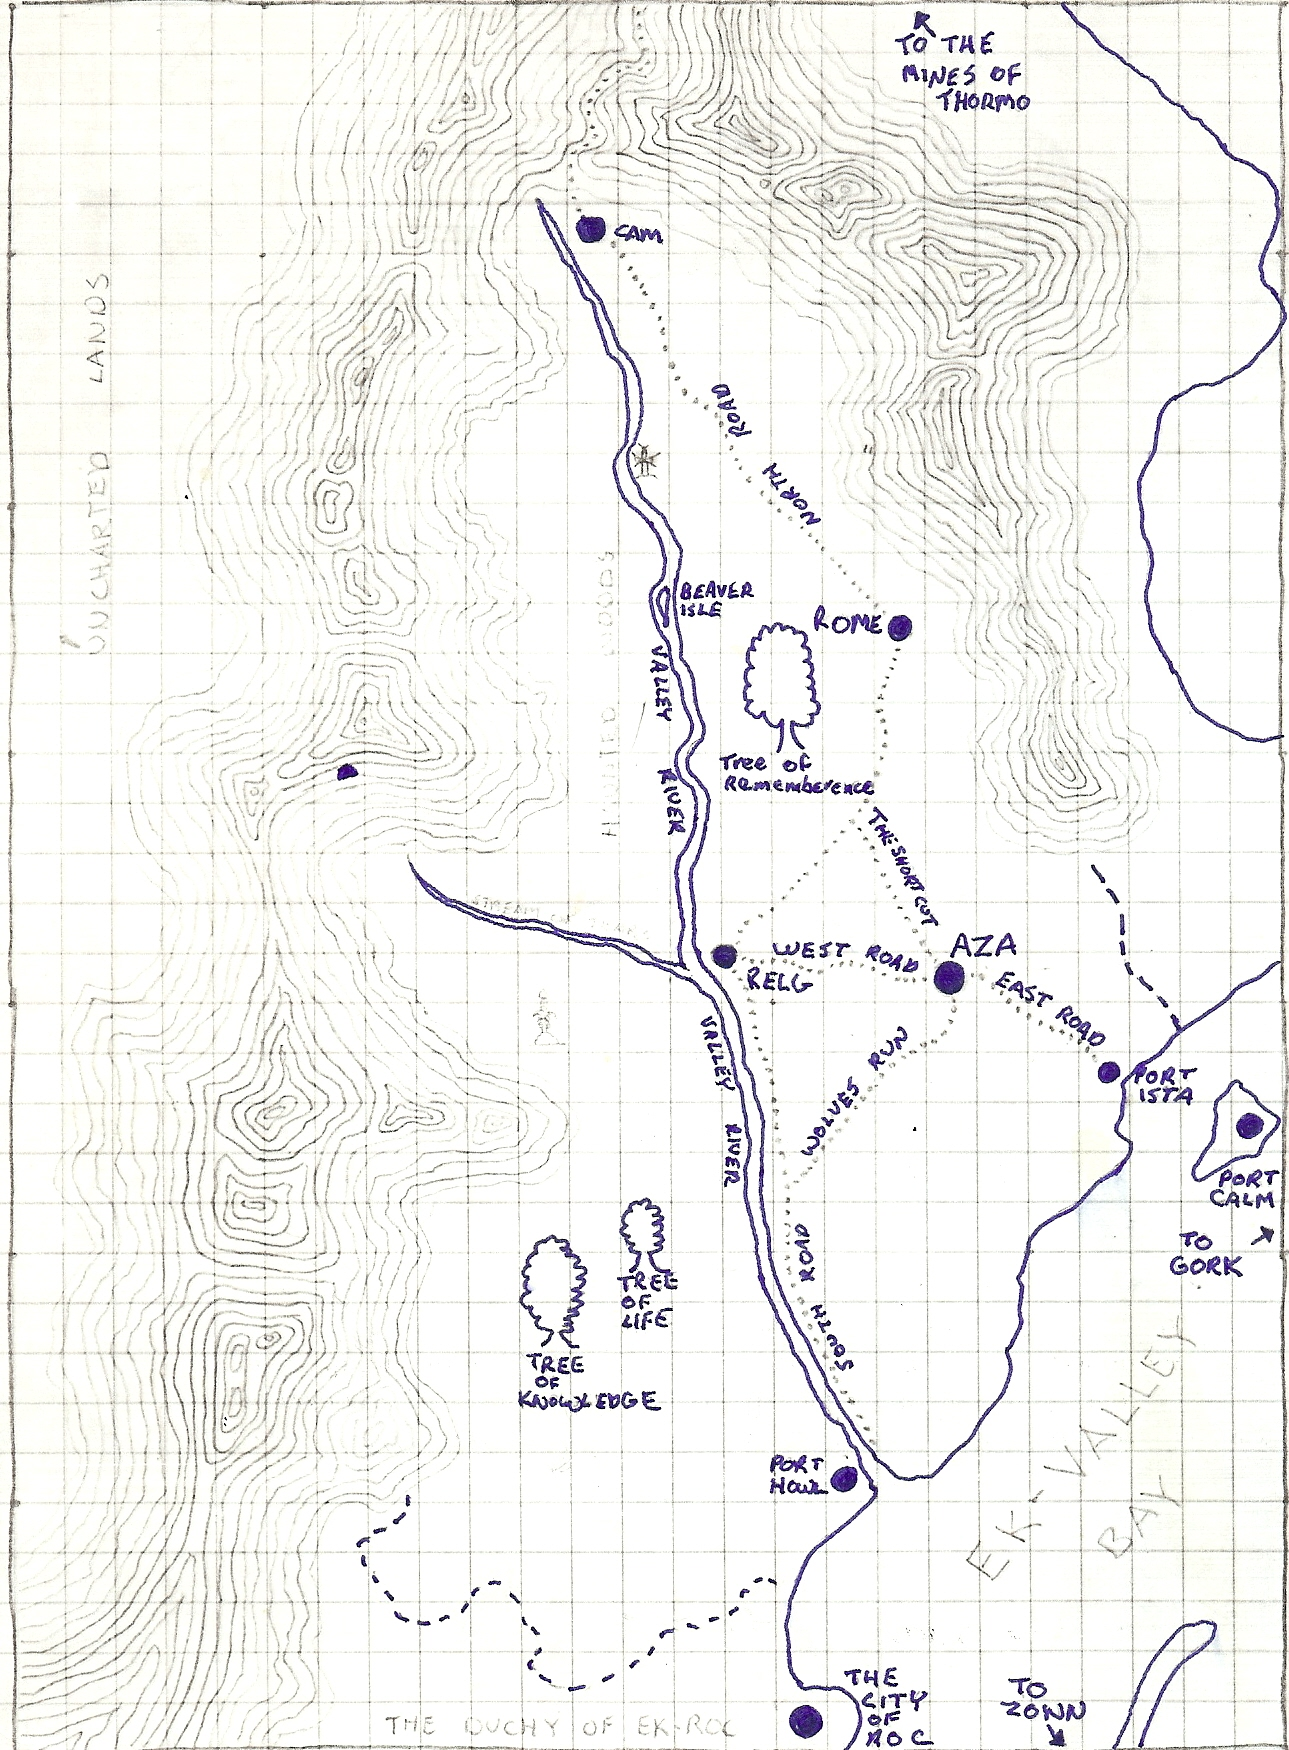 Valleywood - This is where wood elves lived.  I based them kind of off Elfquest, and they rode wolves.